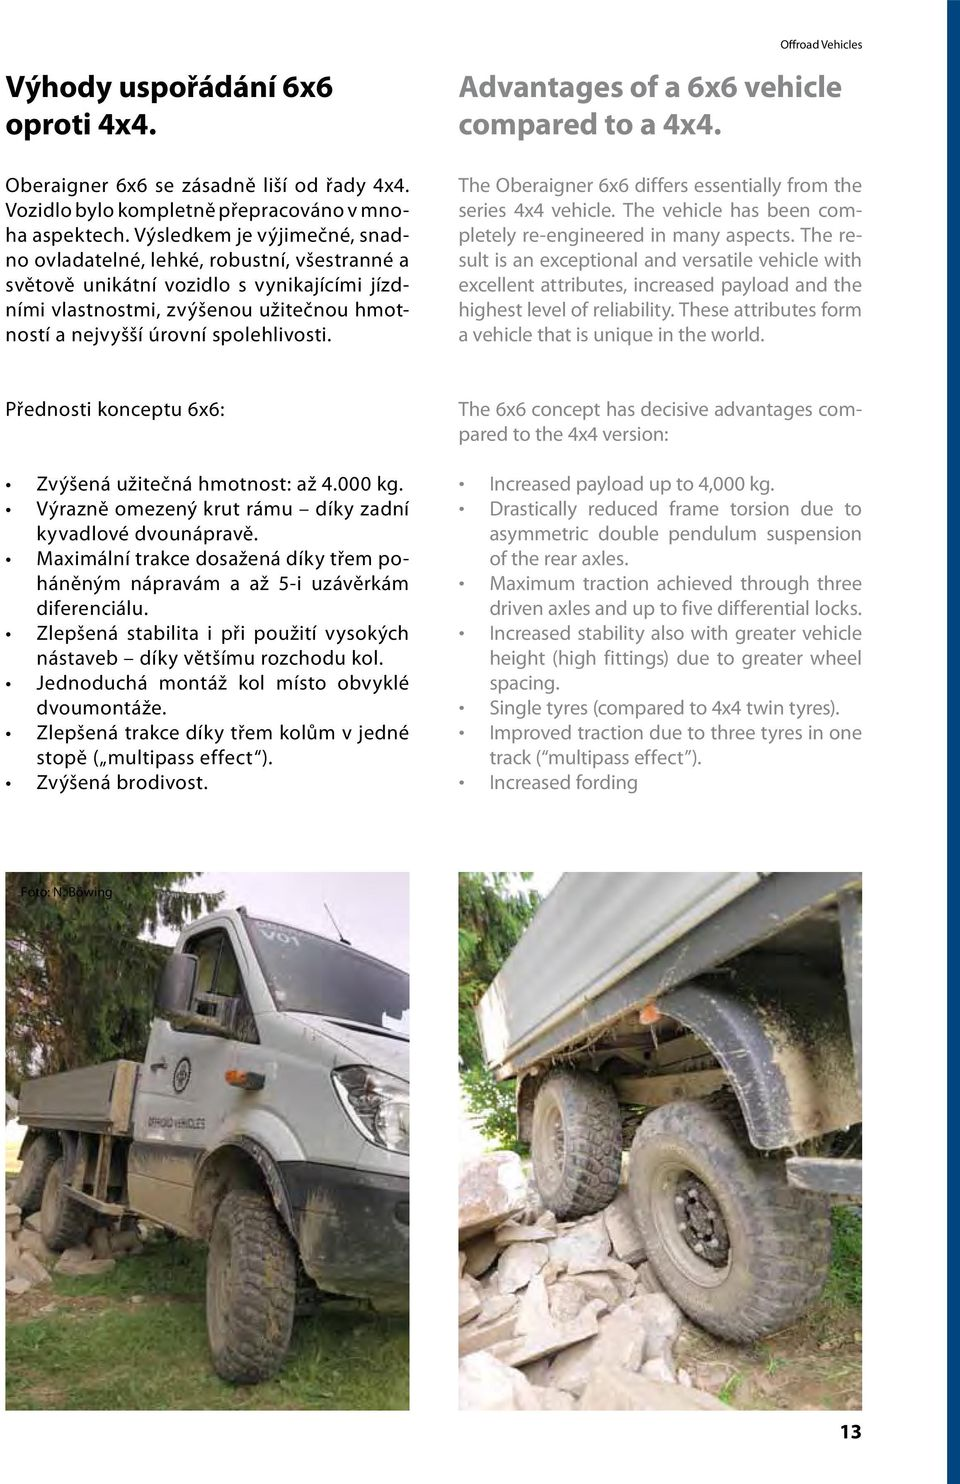 The Oberaigner 6x6 differs essentially from the series 4x4 vehicle. The vehicle has been completely re-engineered in many aspects.